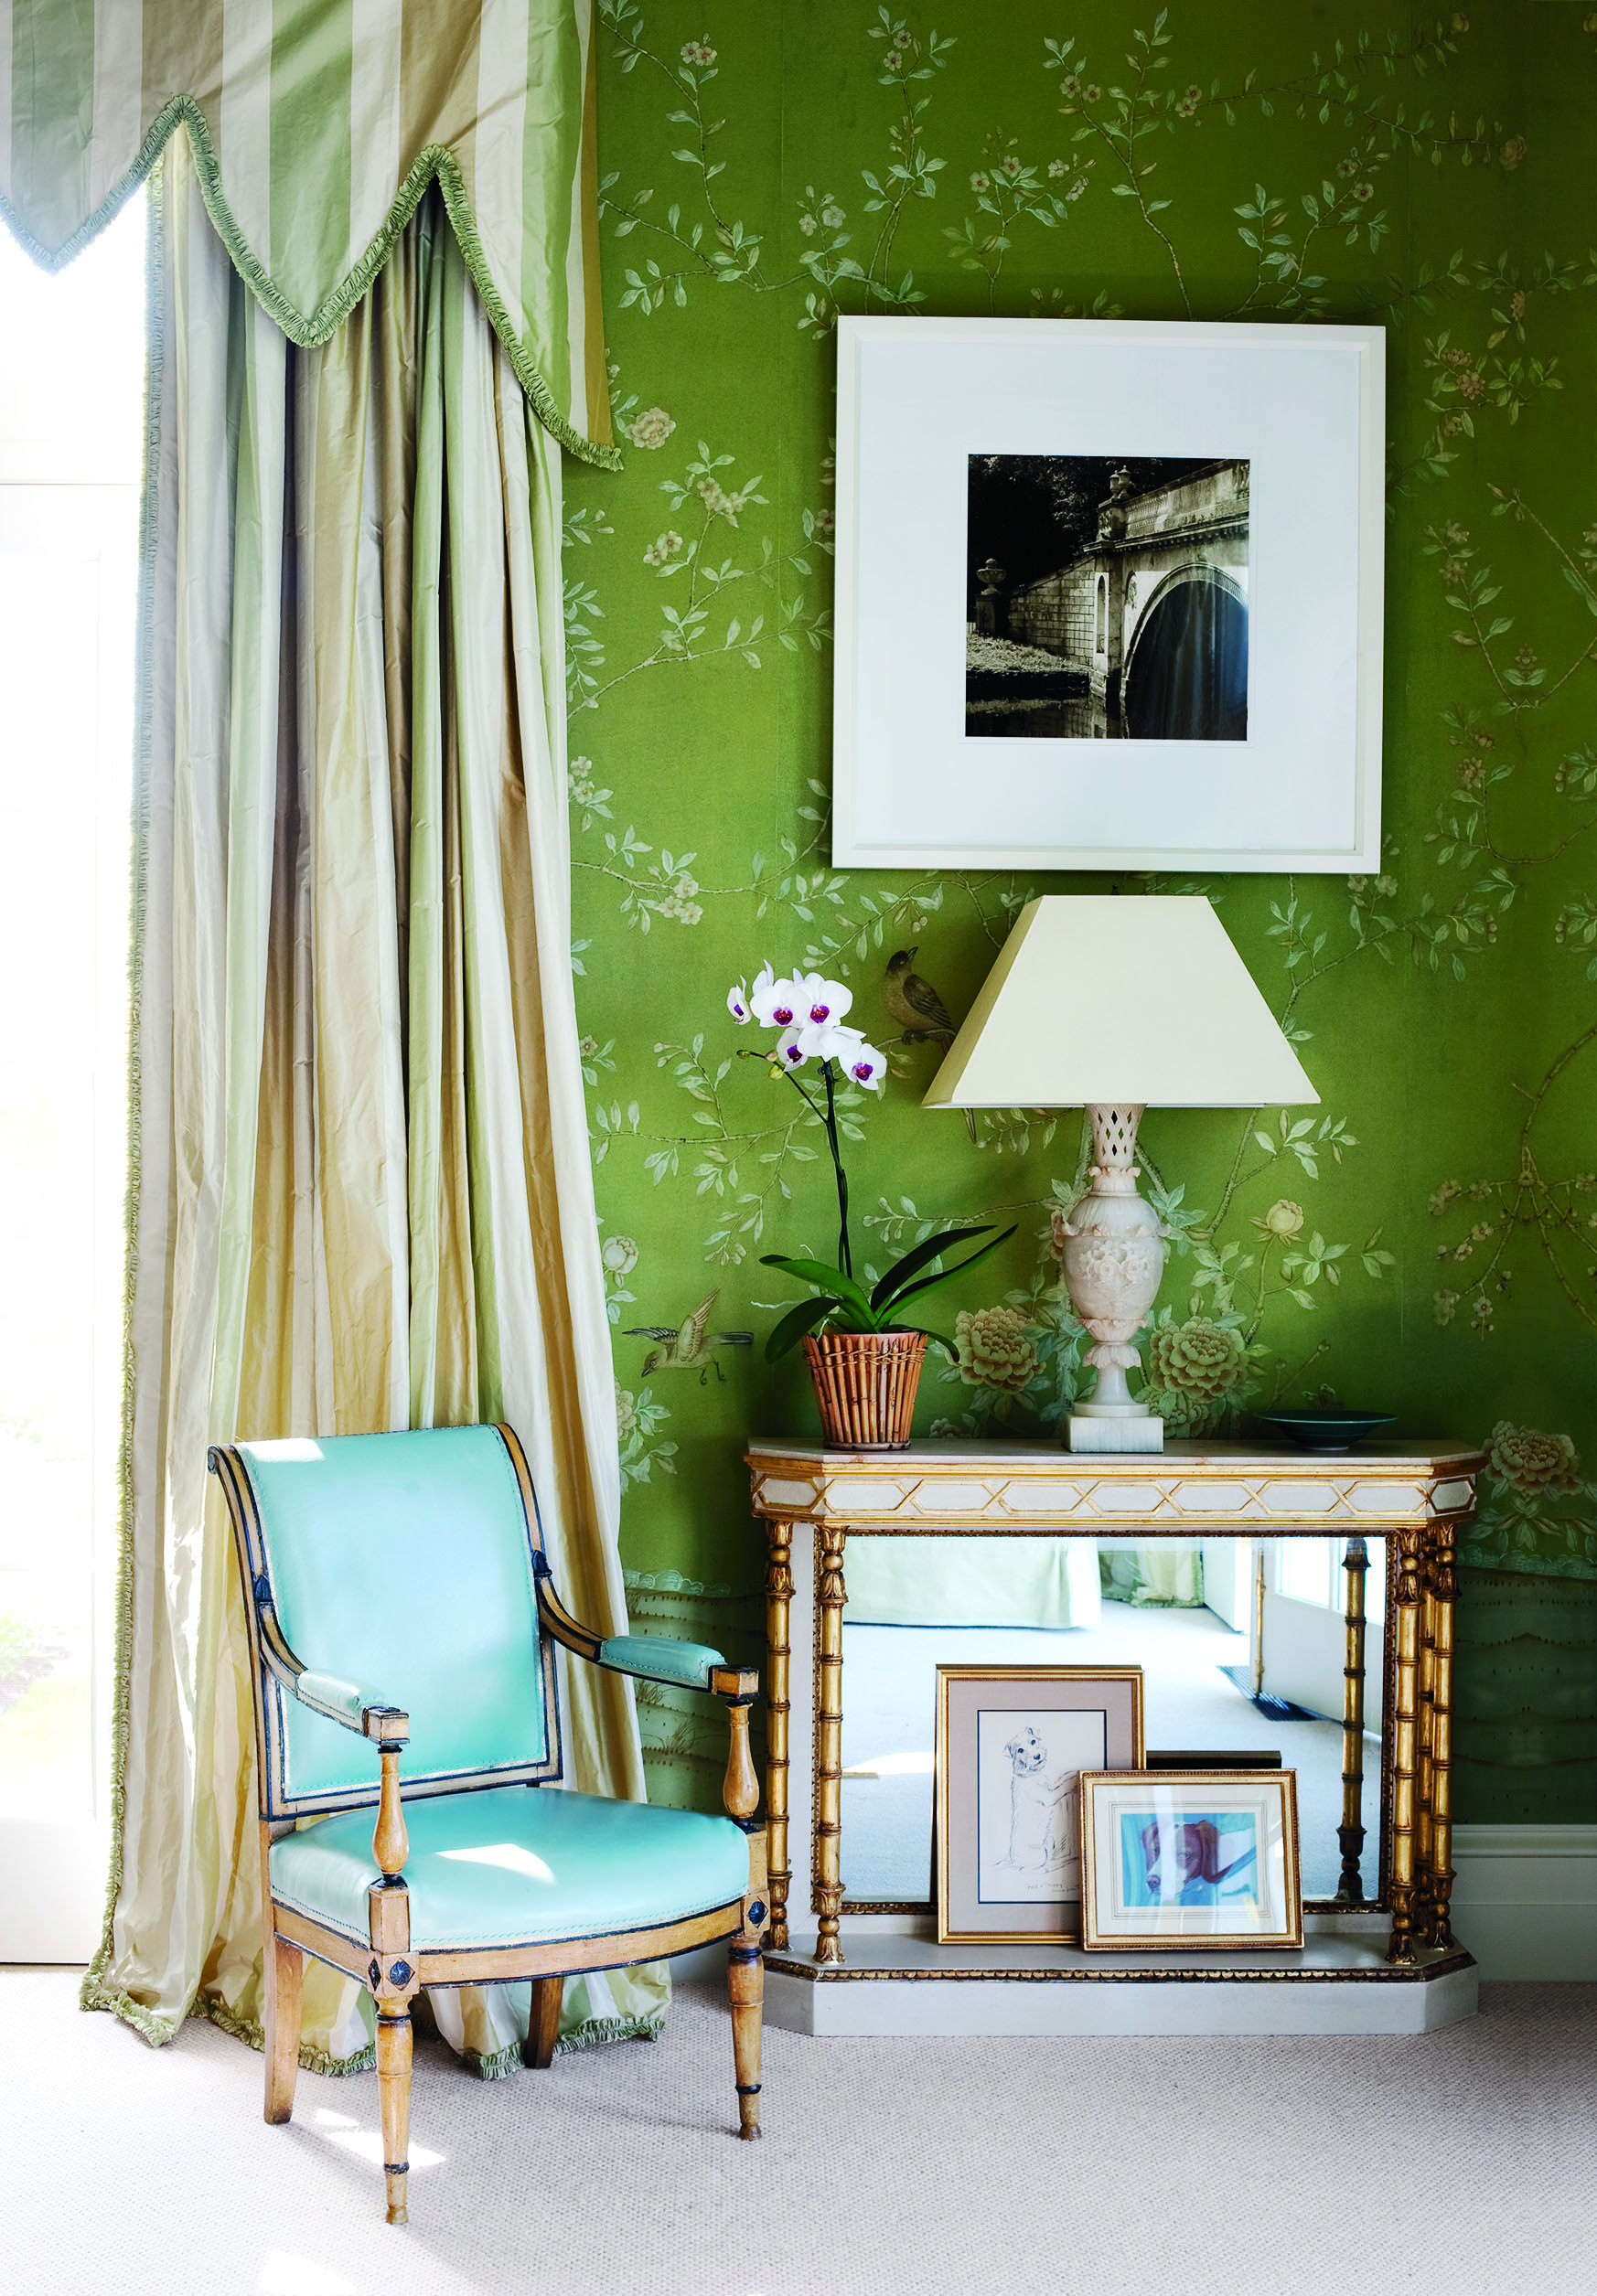 32 Green Room Ideas How to Decorate with Green Wall Paint & Decor